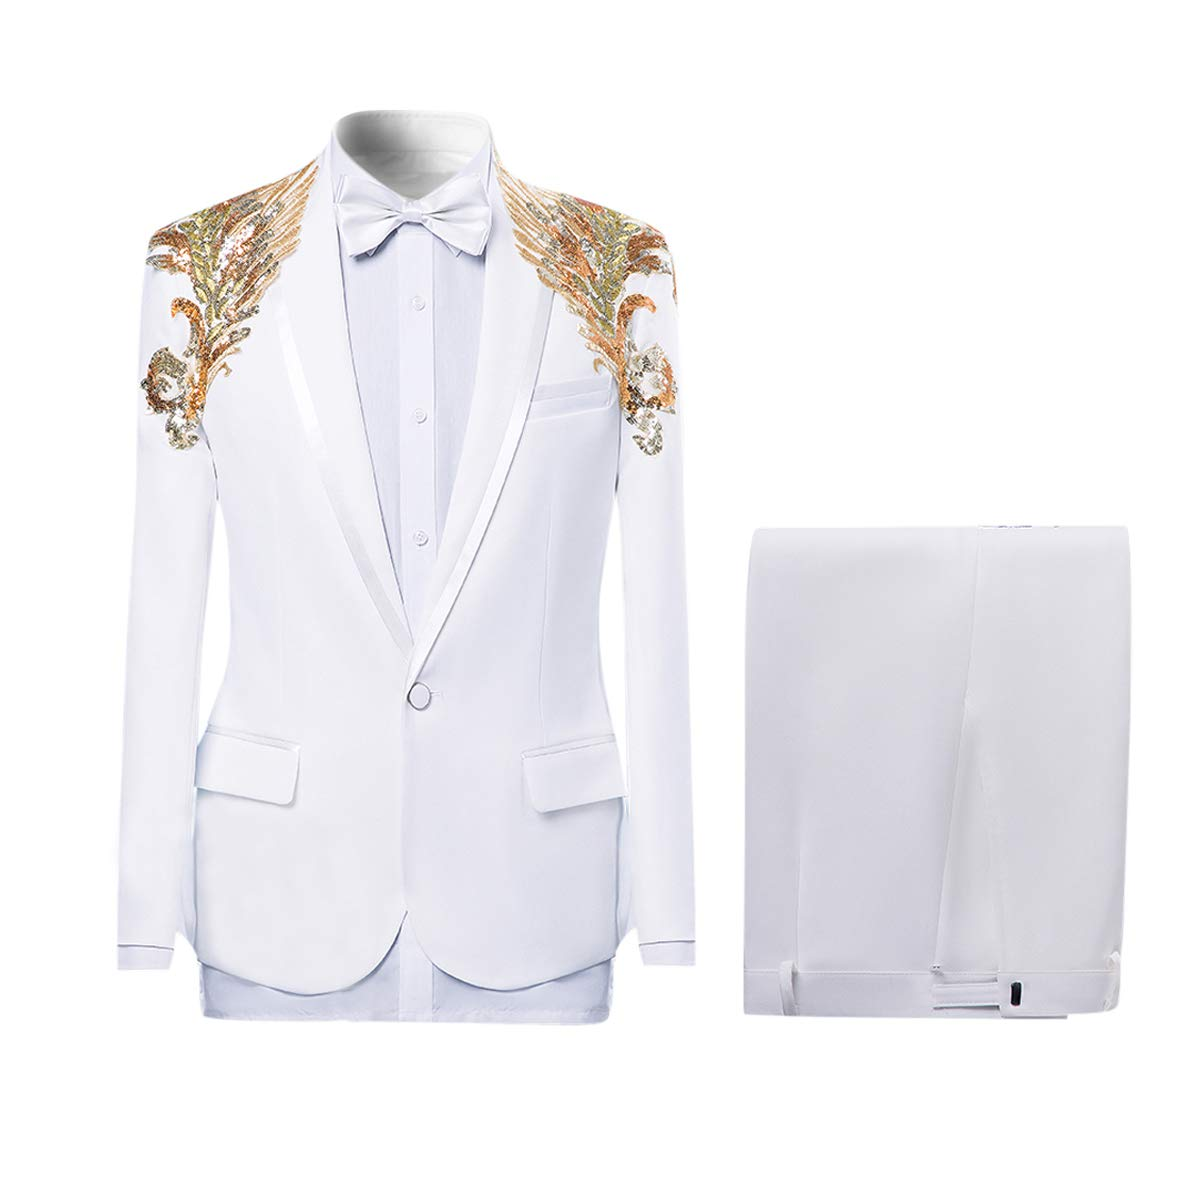 Cloudstyle Mens 2-Piece Suits Shawl Lapel 1 Button Wedding Blazer Dinner Jacket and Pants